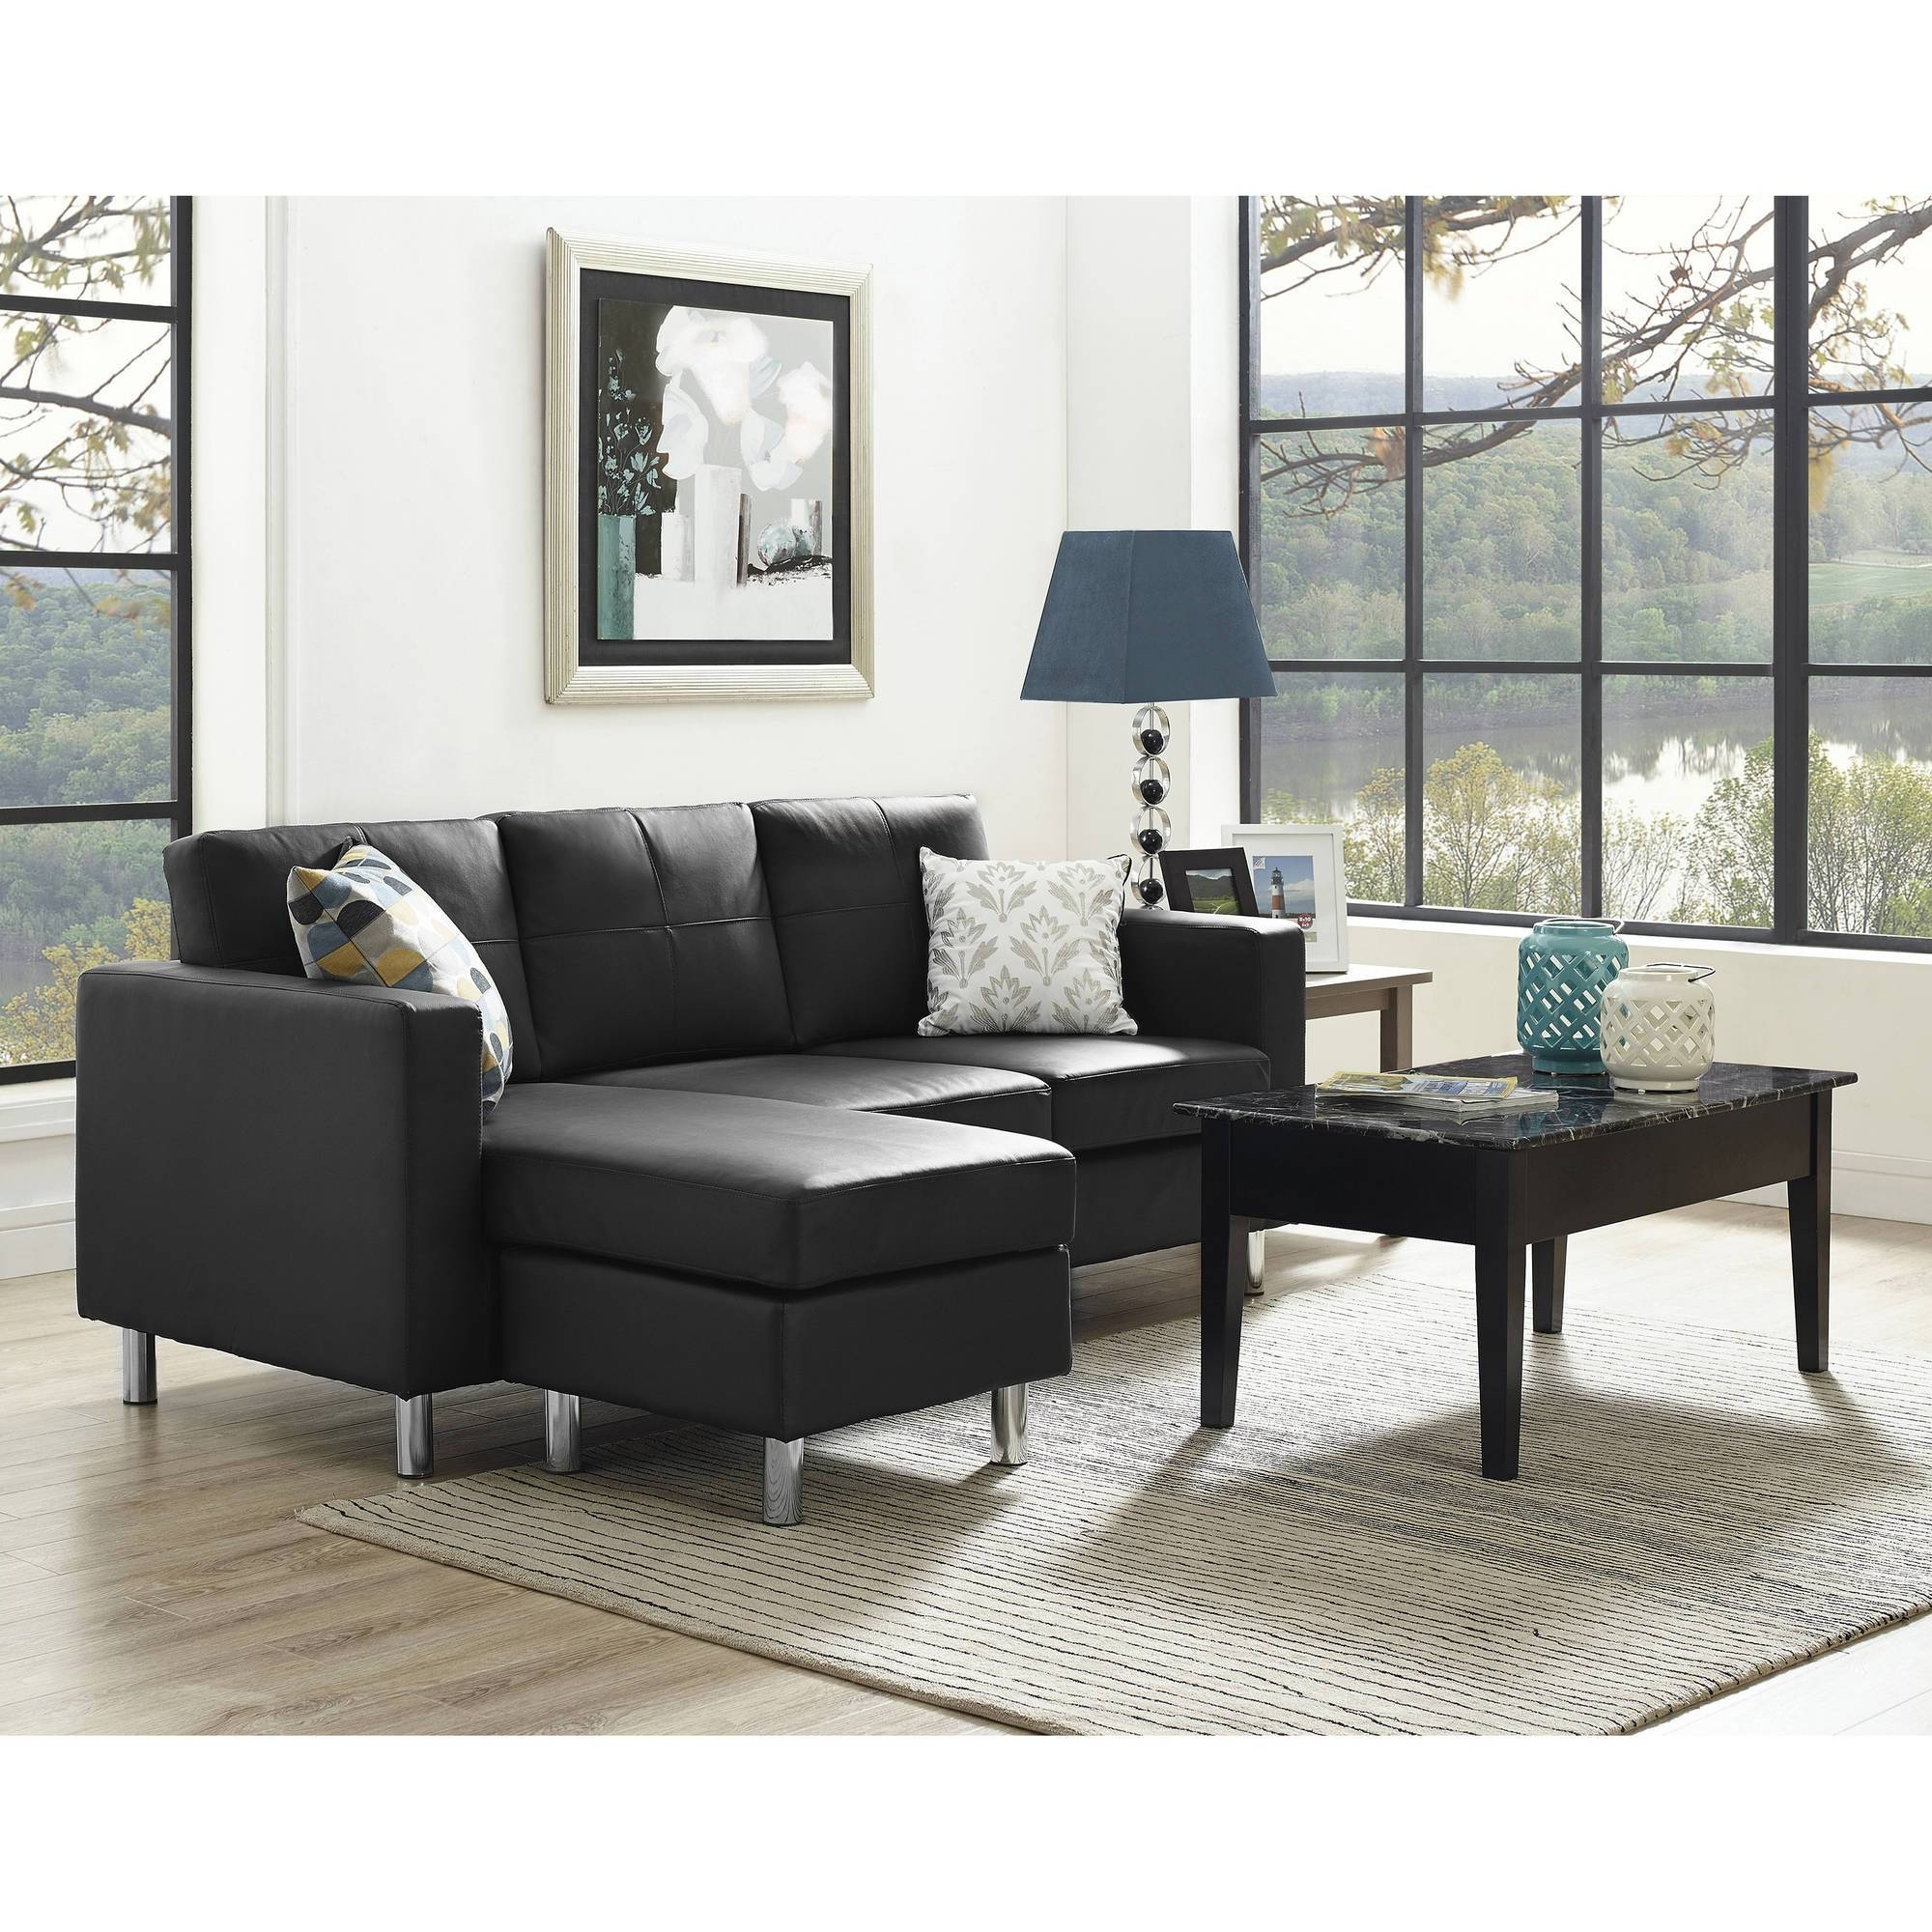 Small Spaces Living Room Value Bundle - Walmart regarding Living Room Sofas (Image 28 of 30)